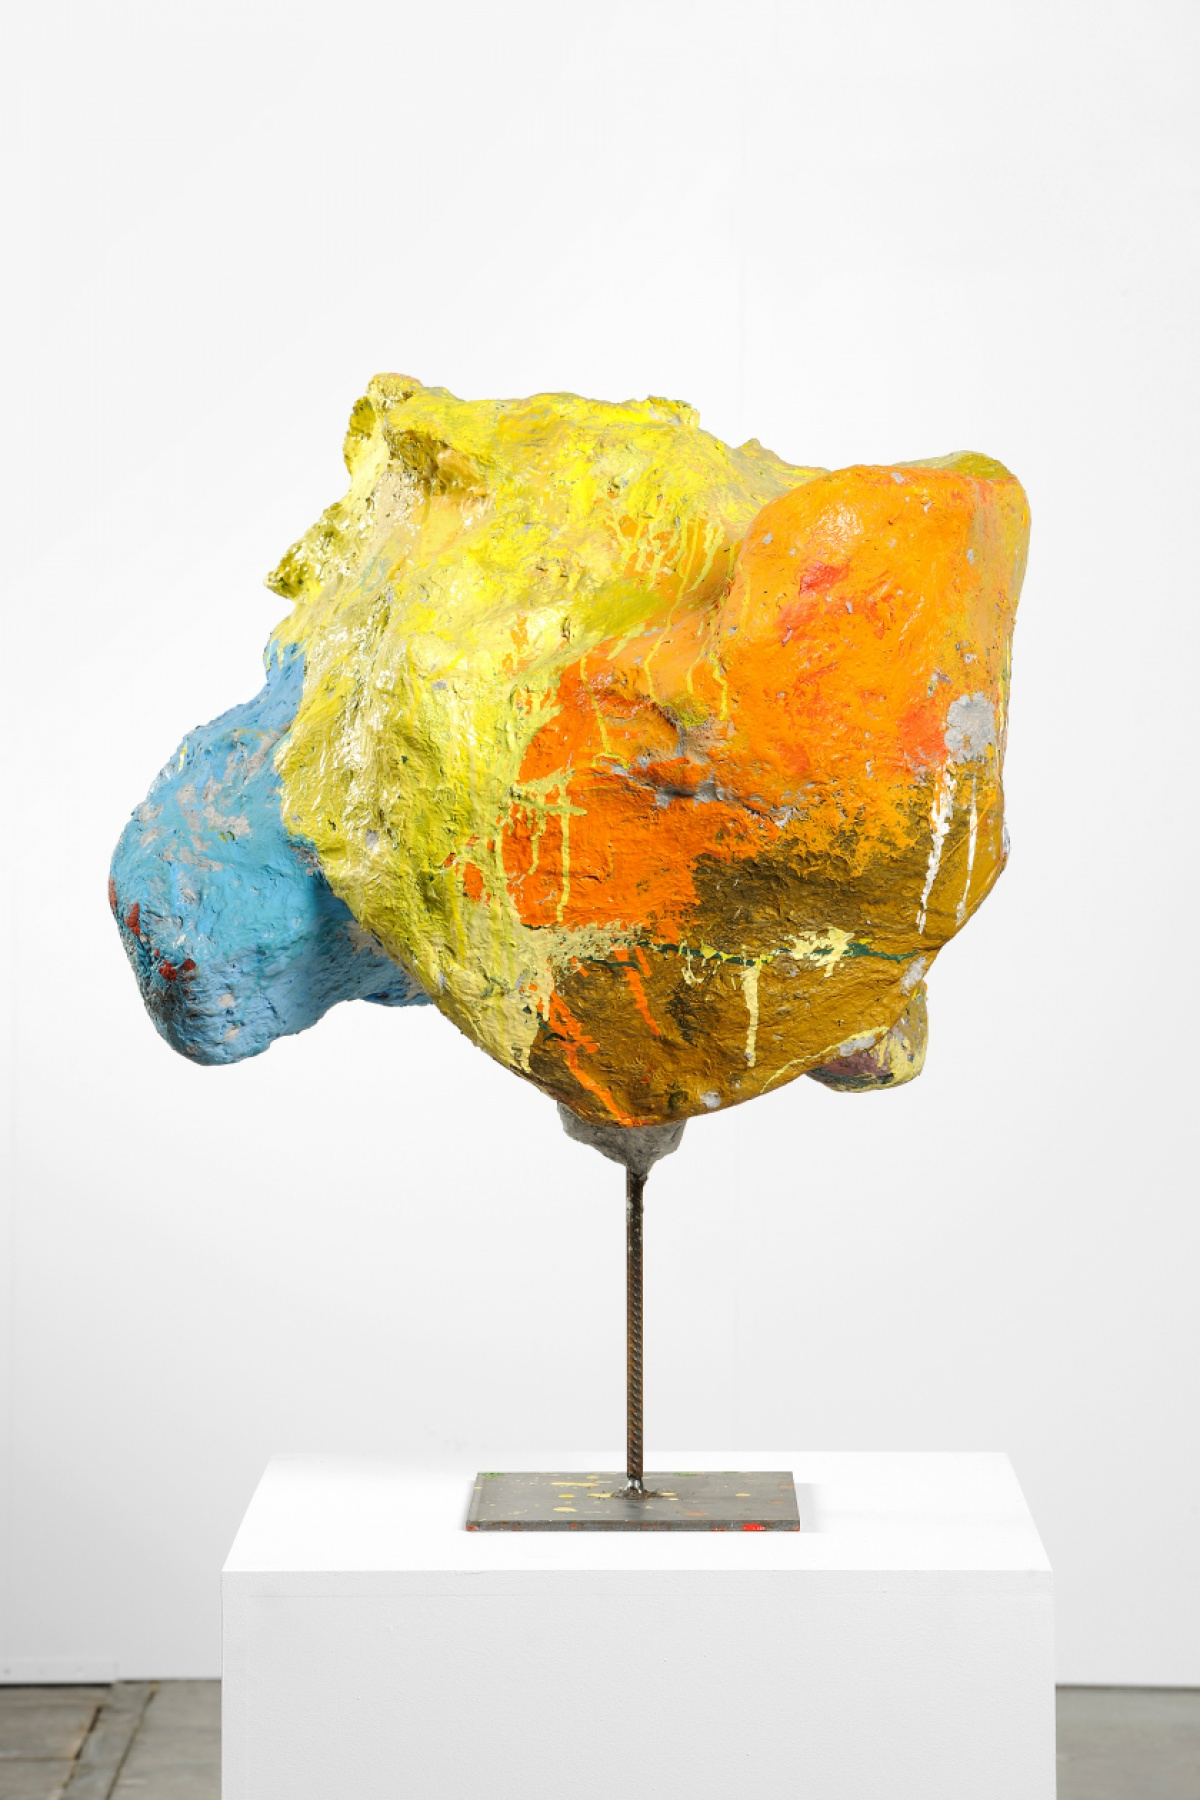 Franz West  Almine Rech Gallery